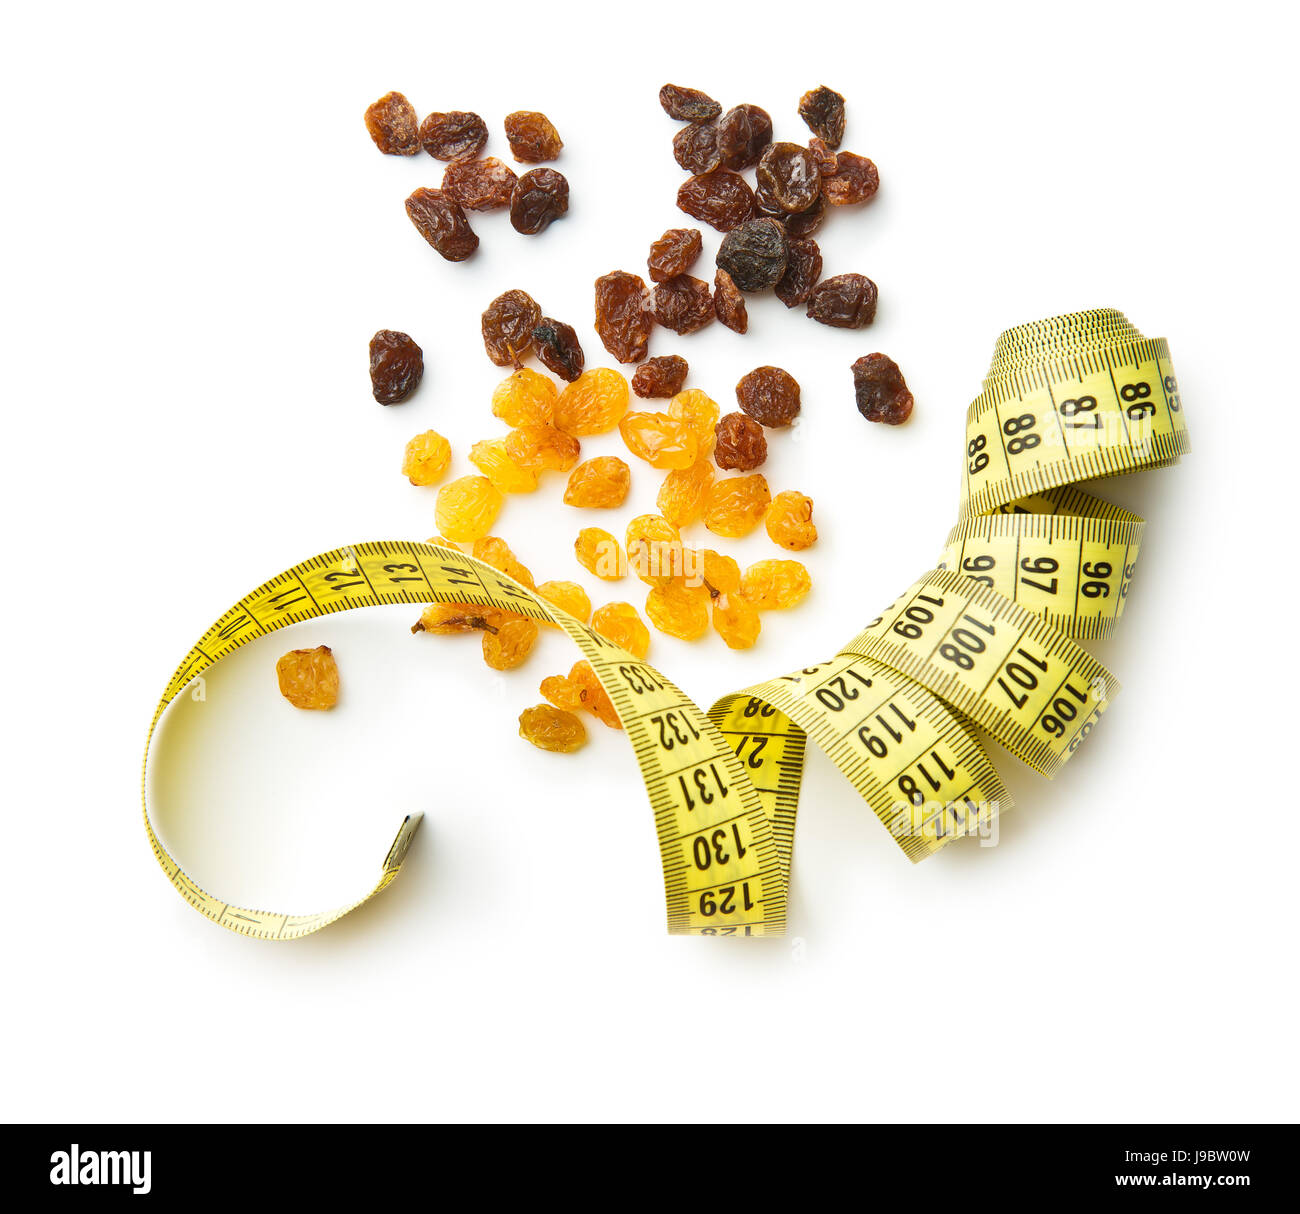 Sweet dried raisins and measuring tape iolated on white background. Top view. - Stock Image